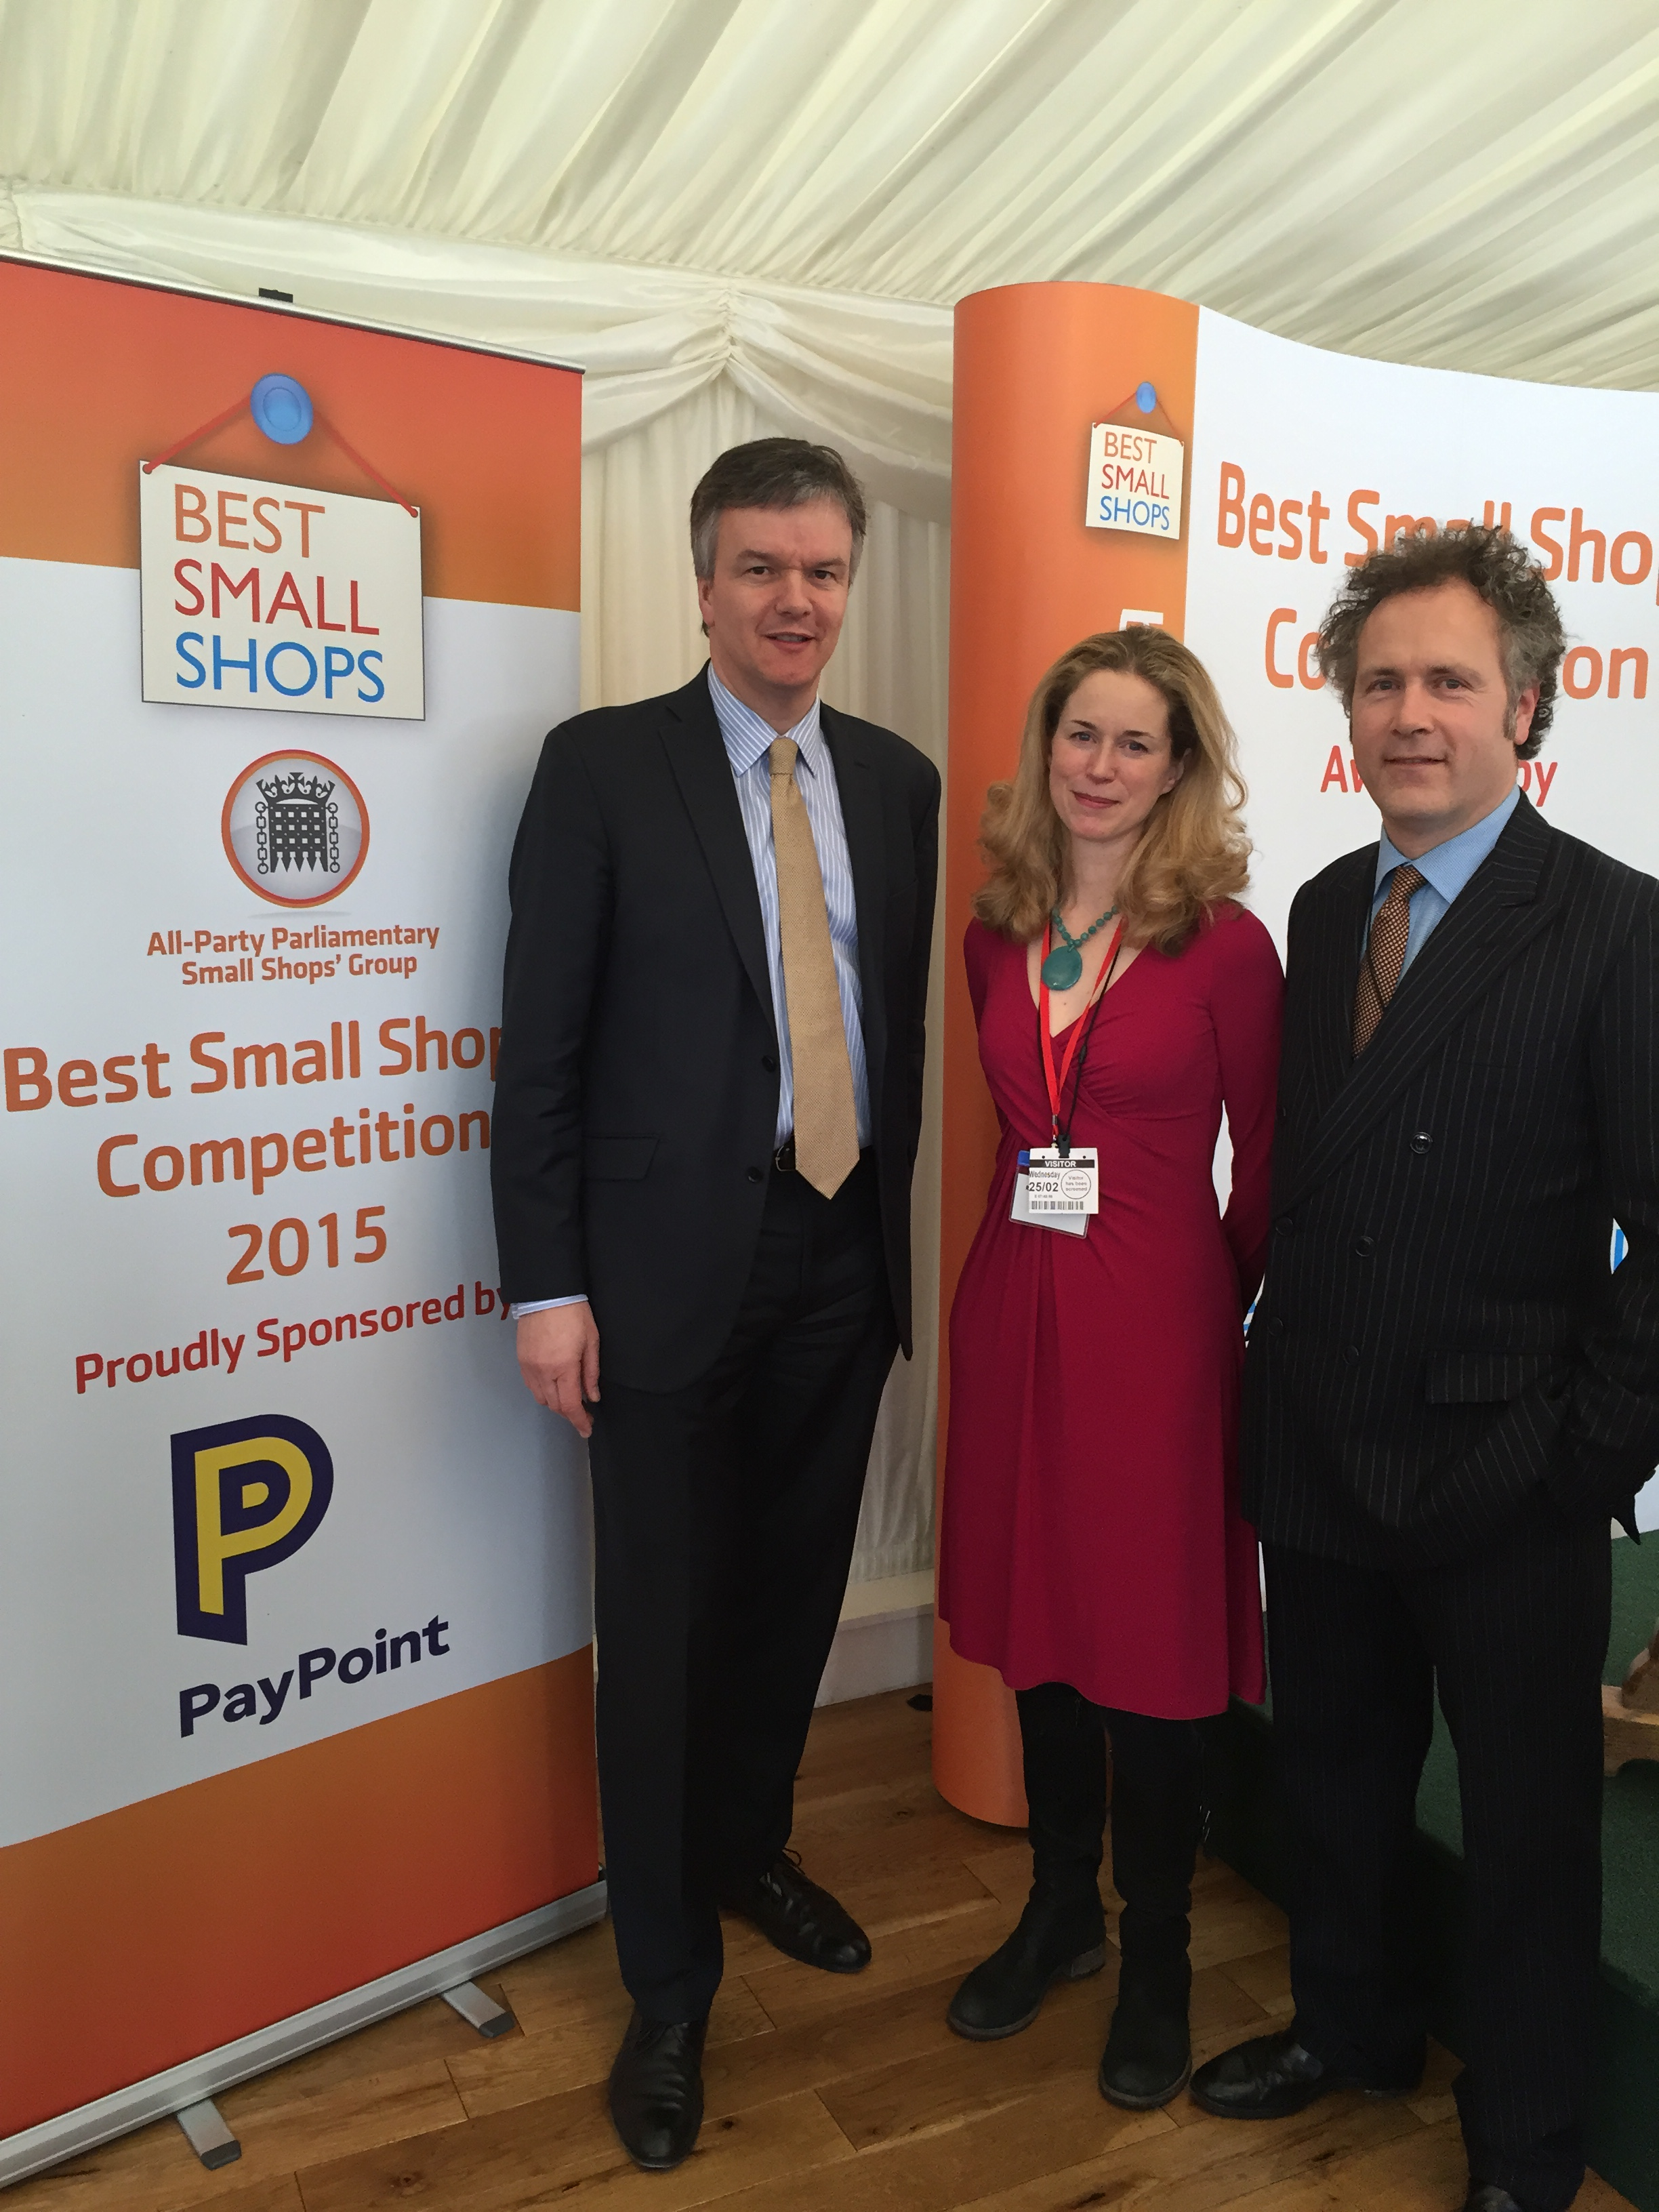 Moore congratulates Mainstreet Trading on best Small Shop competition